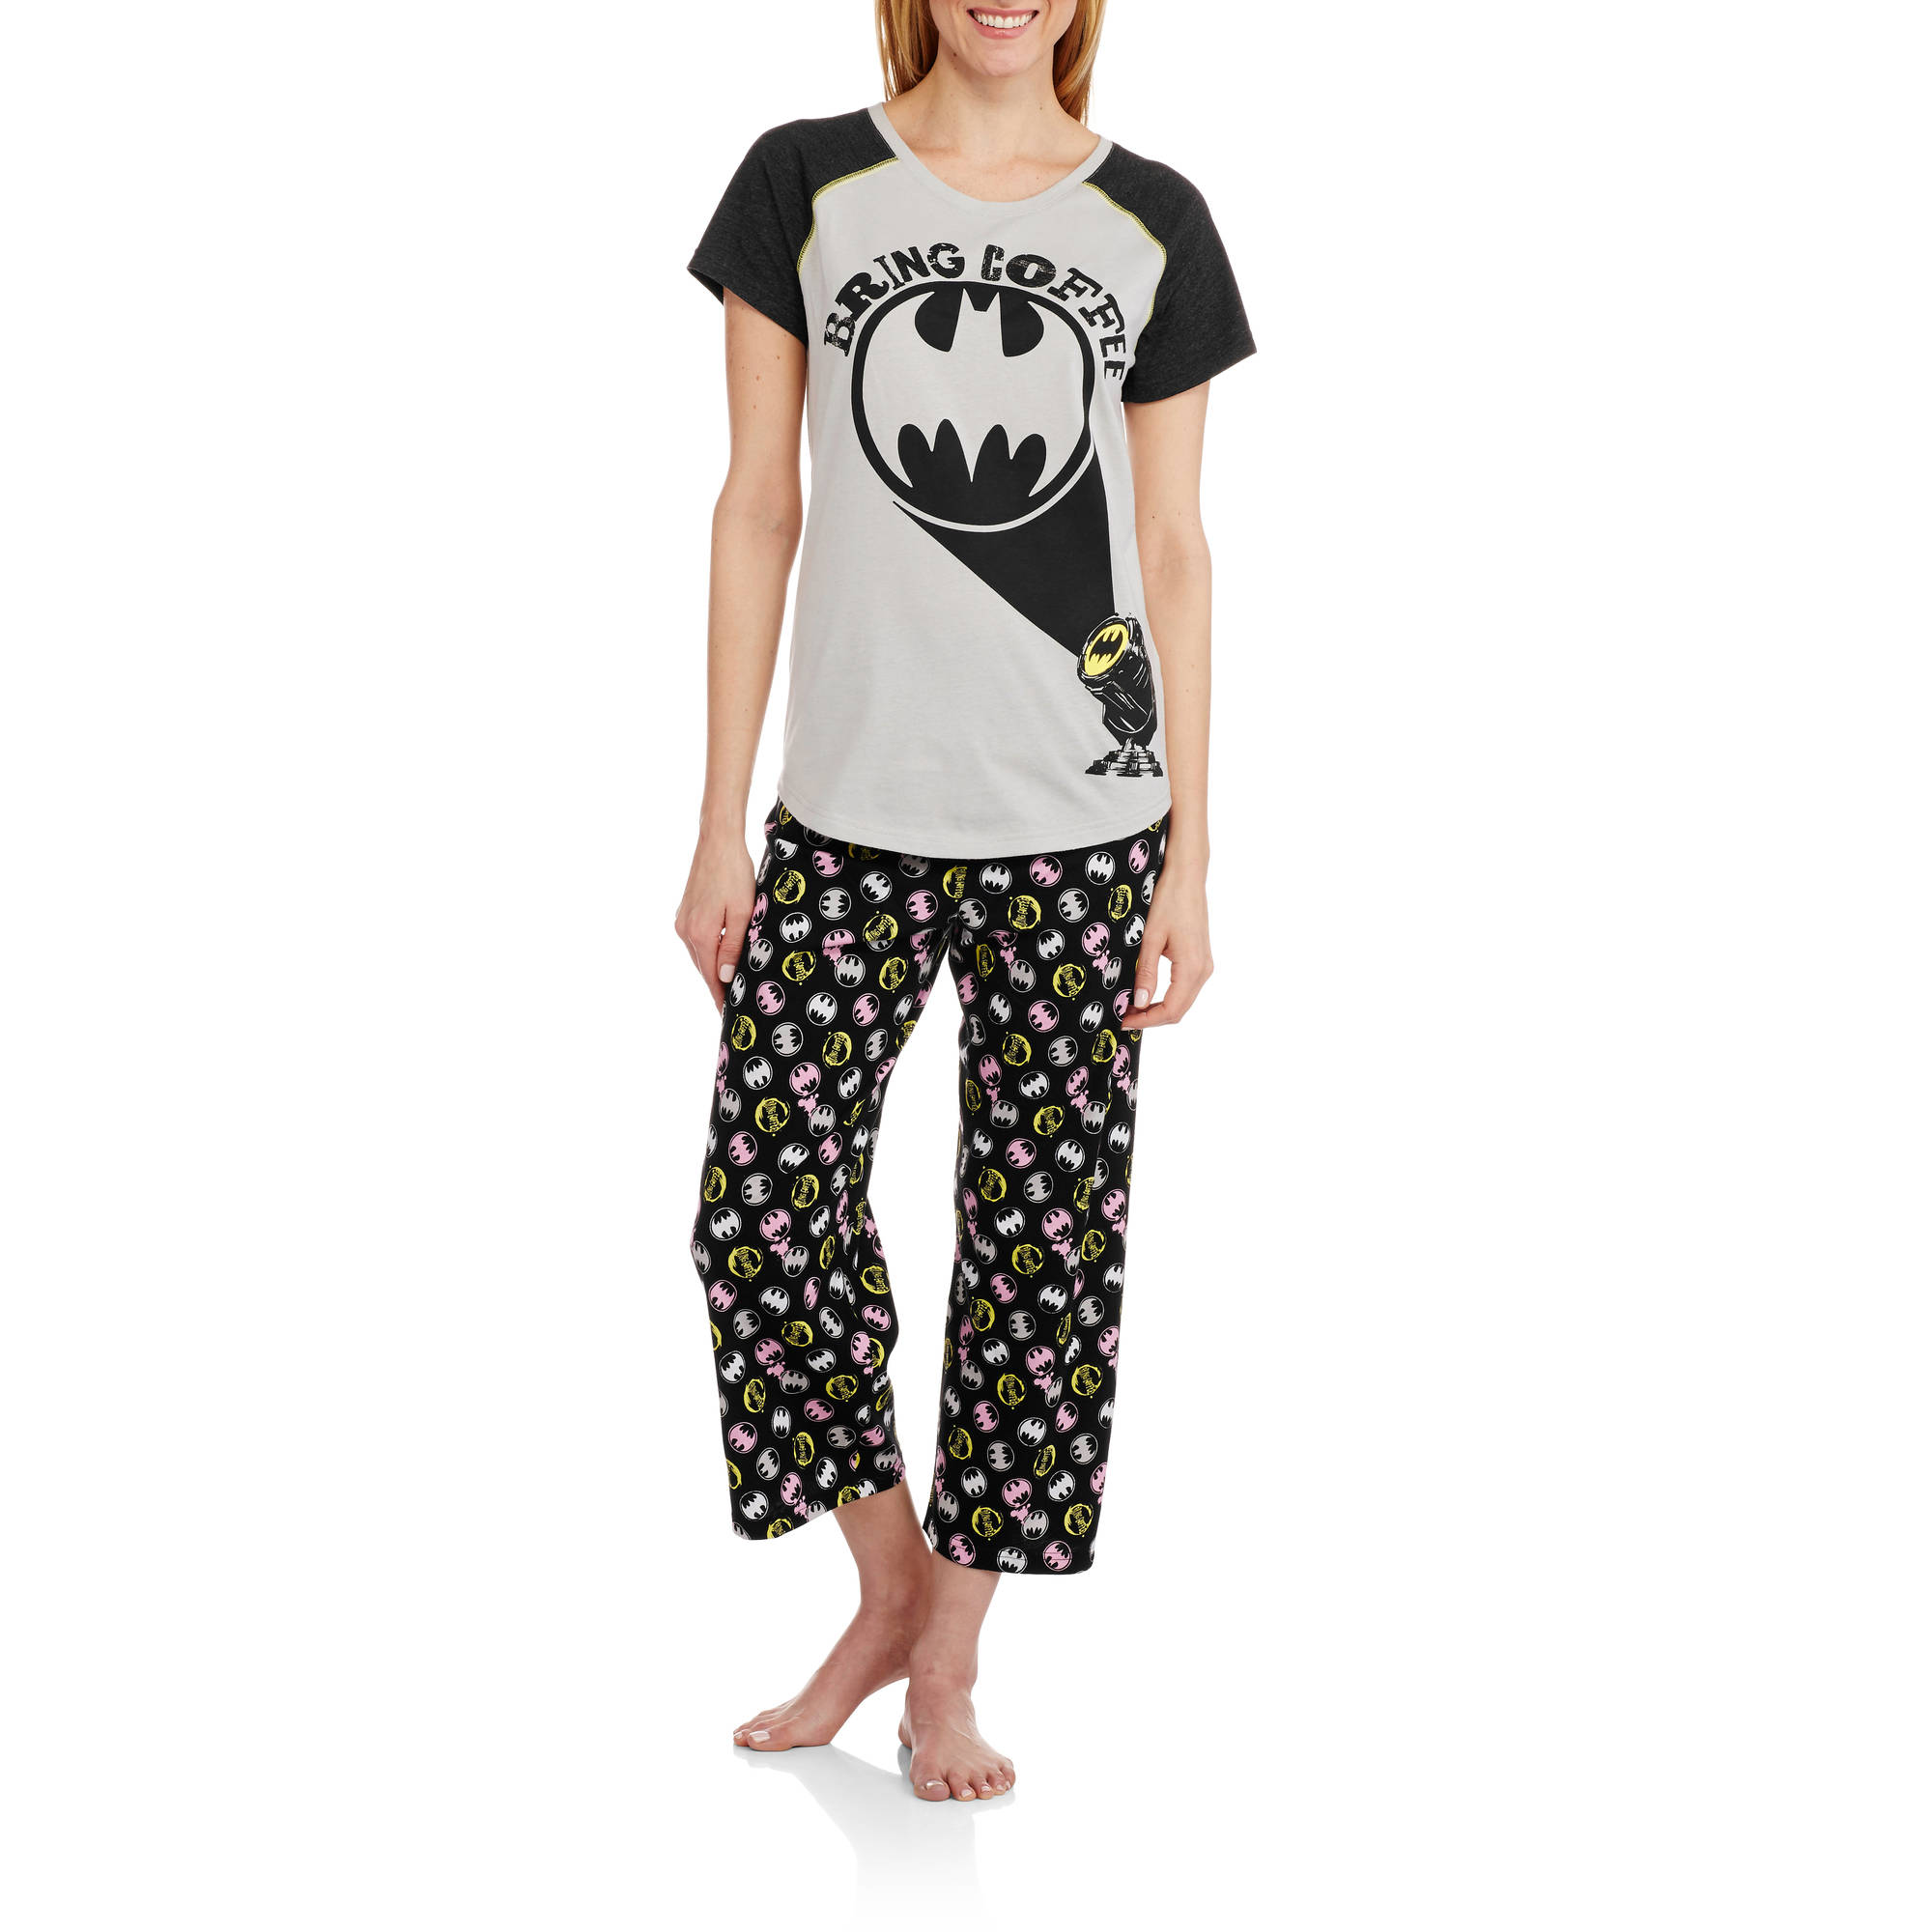 DC Comics Batman Women's Short Sleeve Shirt and Capri Sleepwear Set